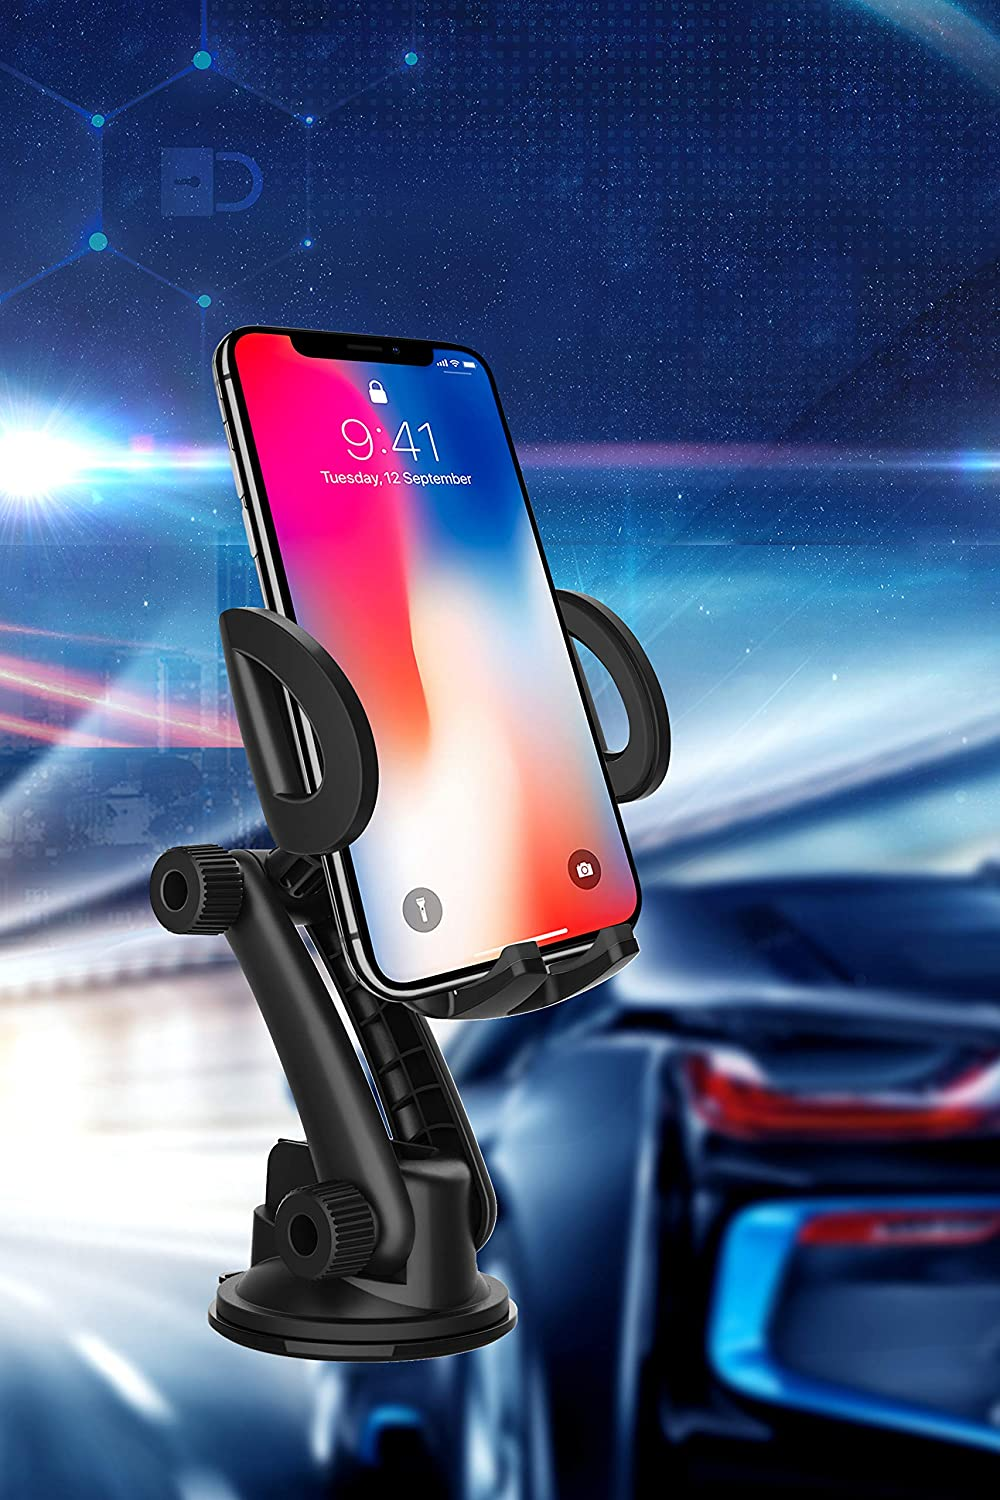 Black Car Phone Holder Mobile Phone Mount quickw Universal Phone Holder Compatible iPhone Xs XS Max XR X 8 8 Plus 7 7 Plus Samsung S20 Ultra Dashboard Windshield Strong Suction 2020 Upgraded